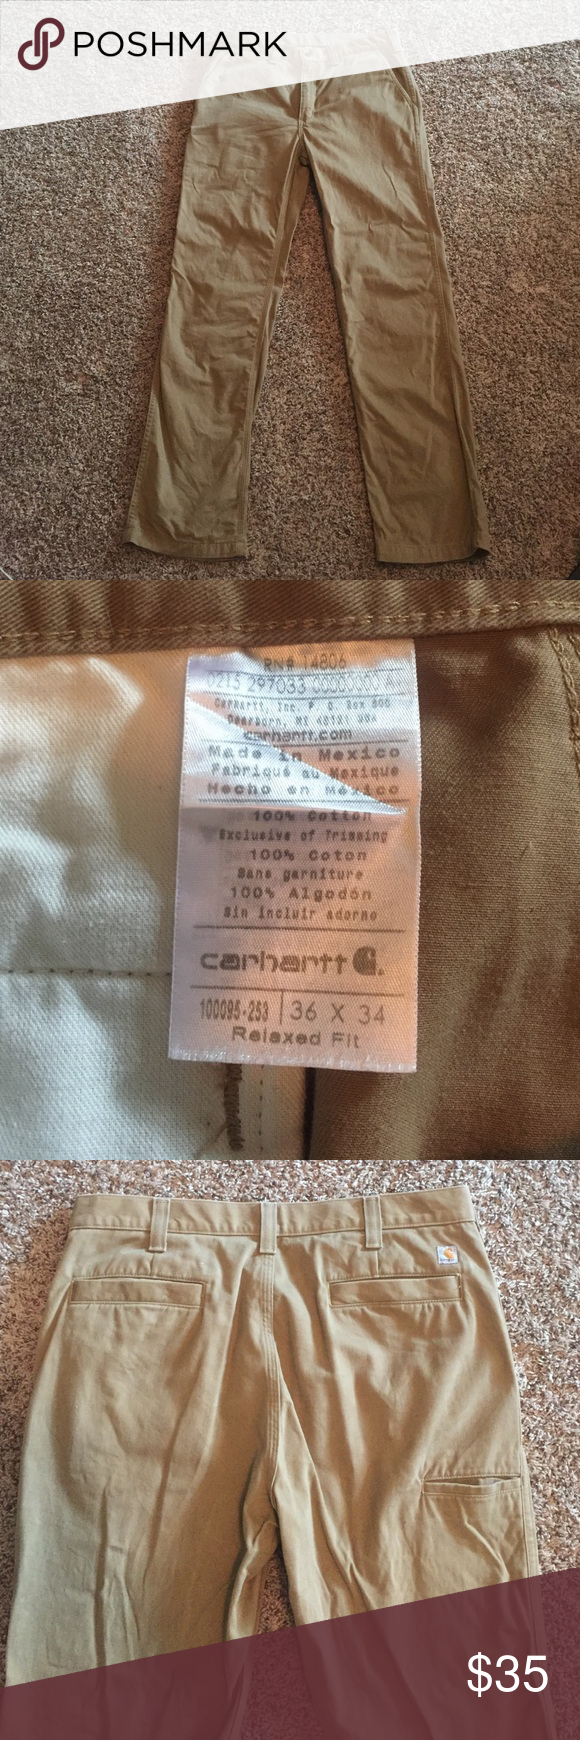 MENS CARHARTT RELAXED FIT PANTS! Khaki CARHARTT, relaxed fit men's pants. They are a size 36x34. They have a couple black dots on the pants (see last pic). Otherwise these are in great condition!!!  Asking $27/OBO! Feel free to message me with questions or offers! It doesn't hurt to send me an offer, I consider all :) Carhartt Pants Chinos & Khakis